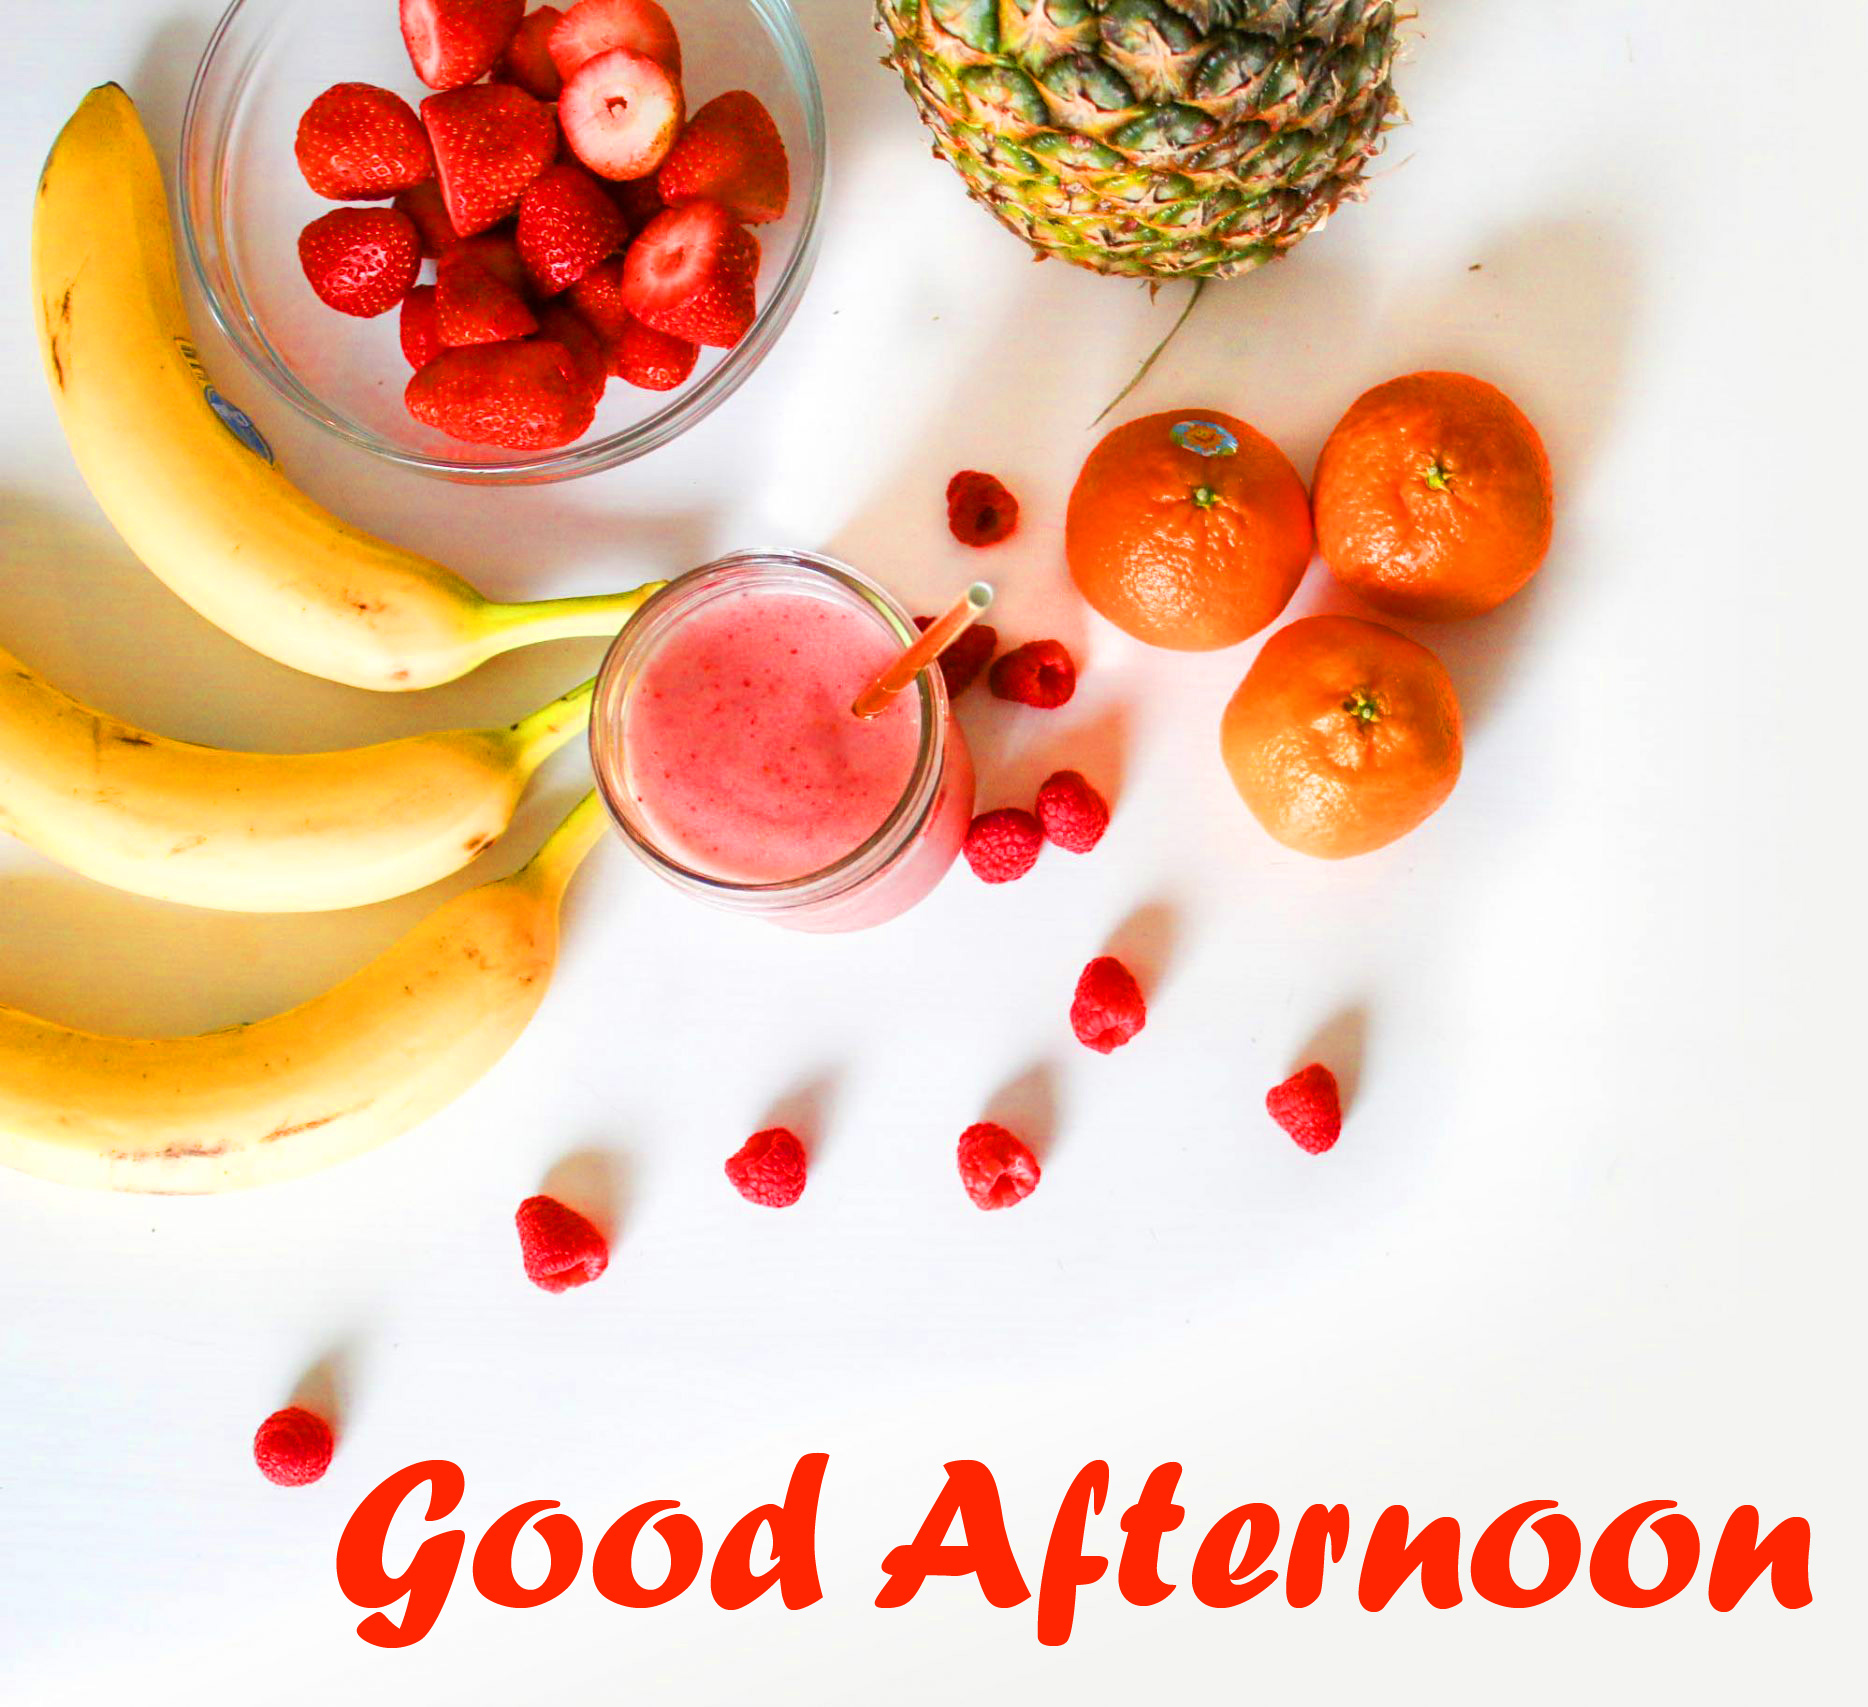 Fruits Lunch Good Afternoon Wallpaper